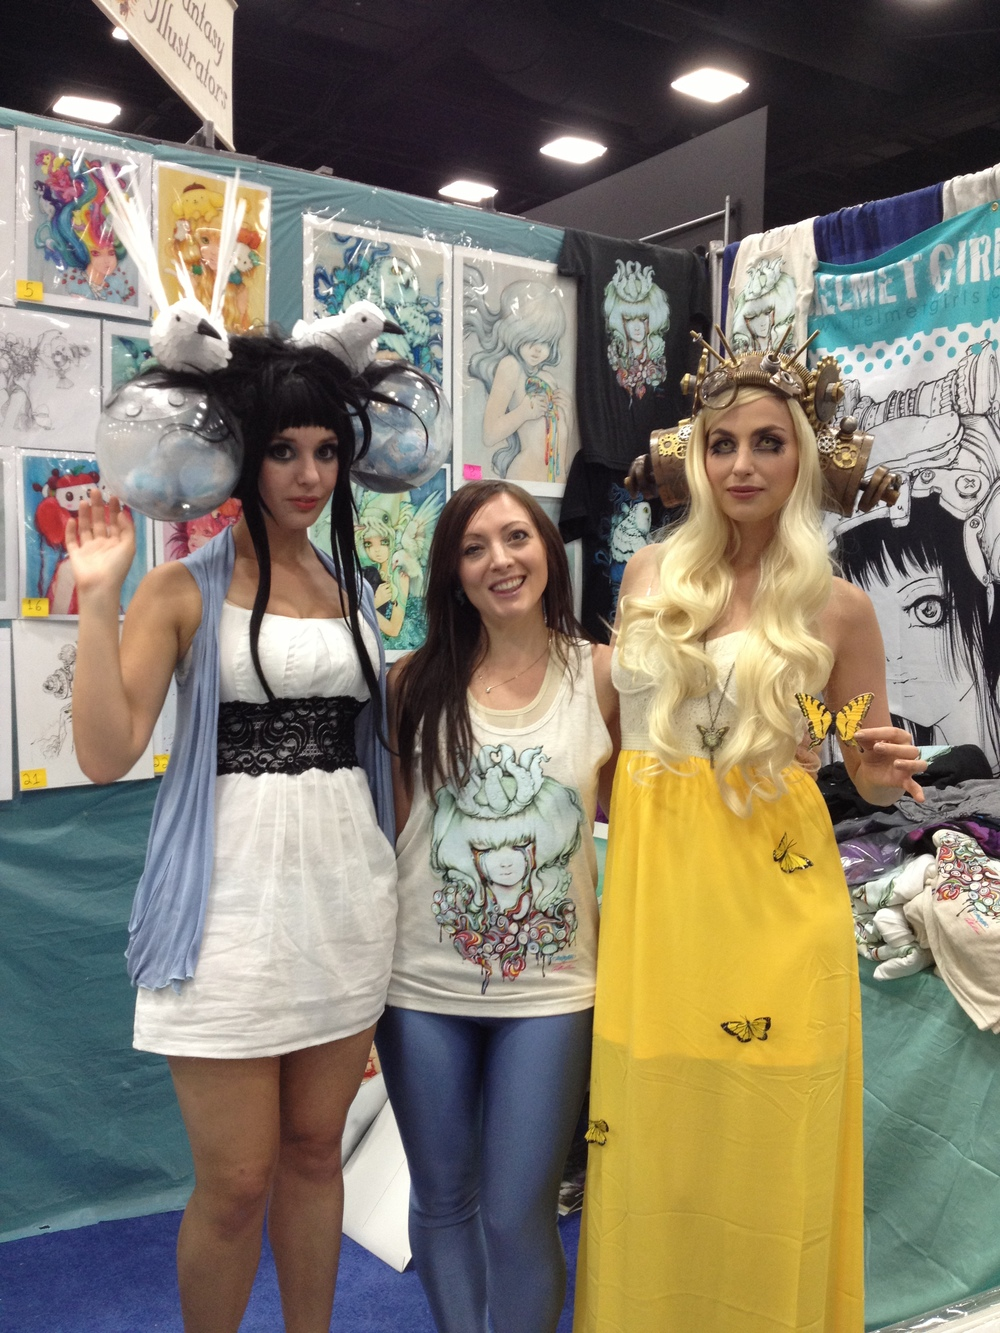 Meagan Marie and Lisa Lou Who as The Heart and The Egg Thief. Cosplay to the max!